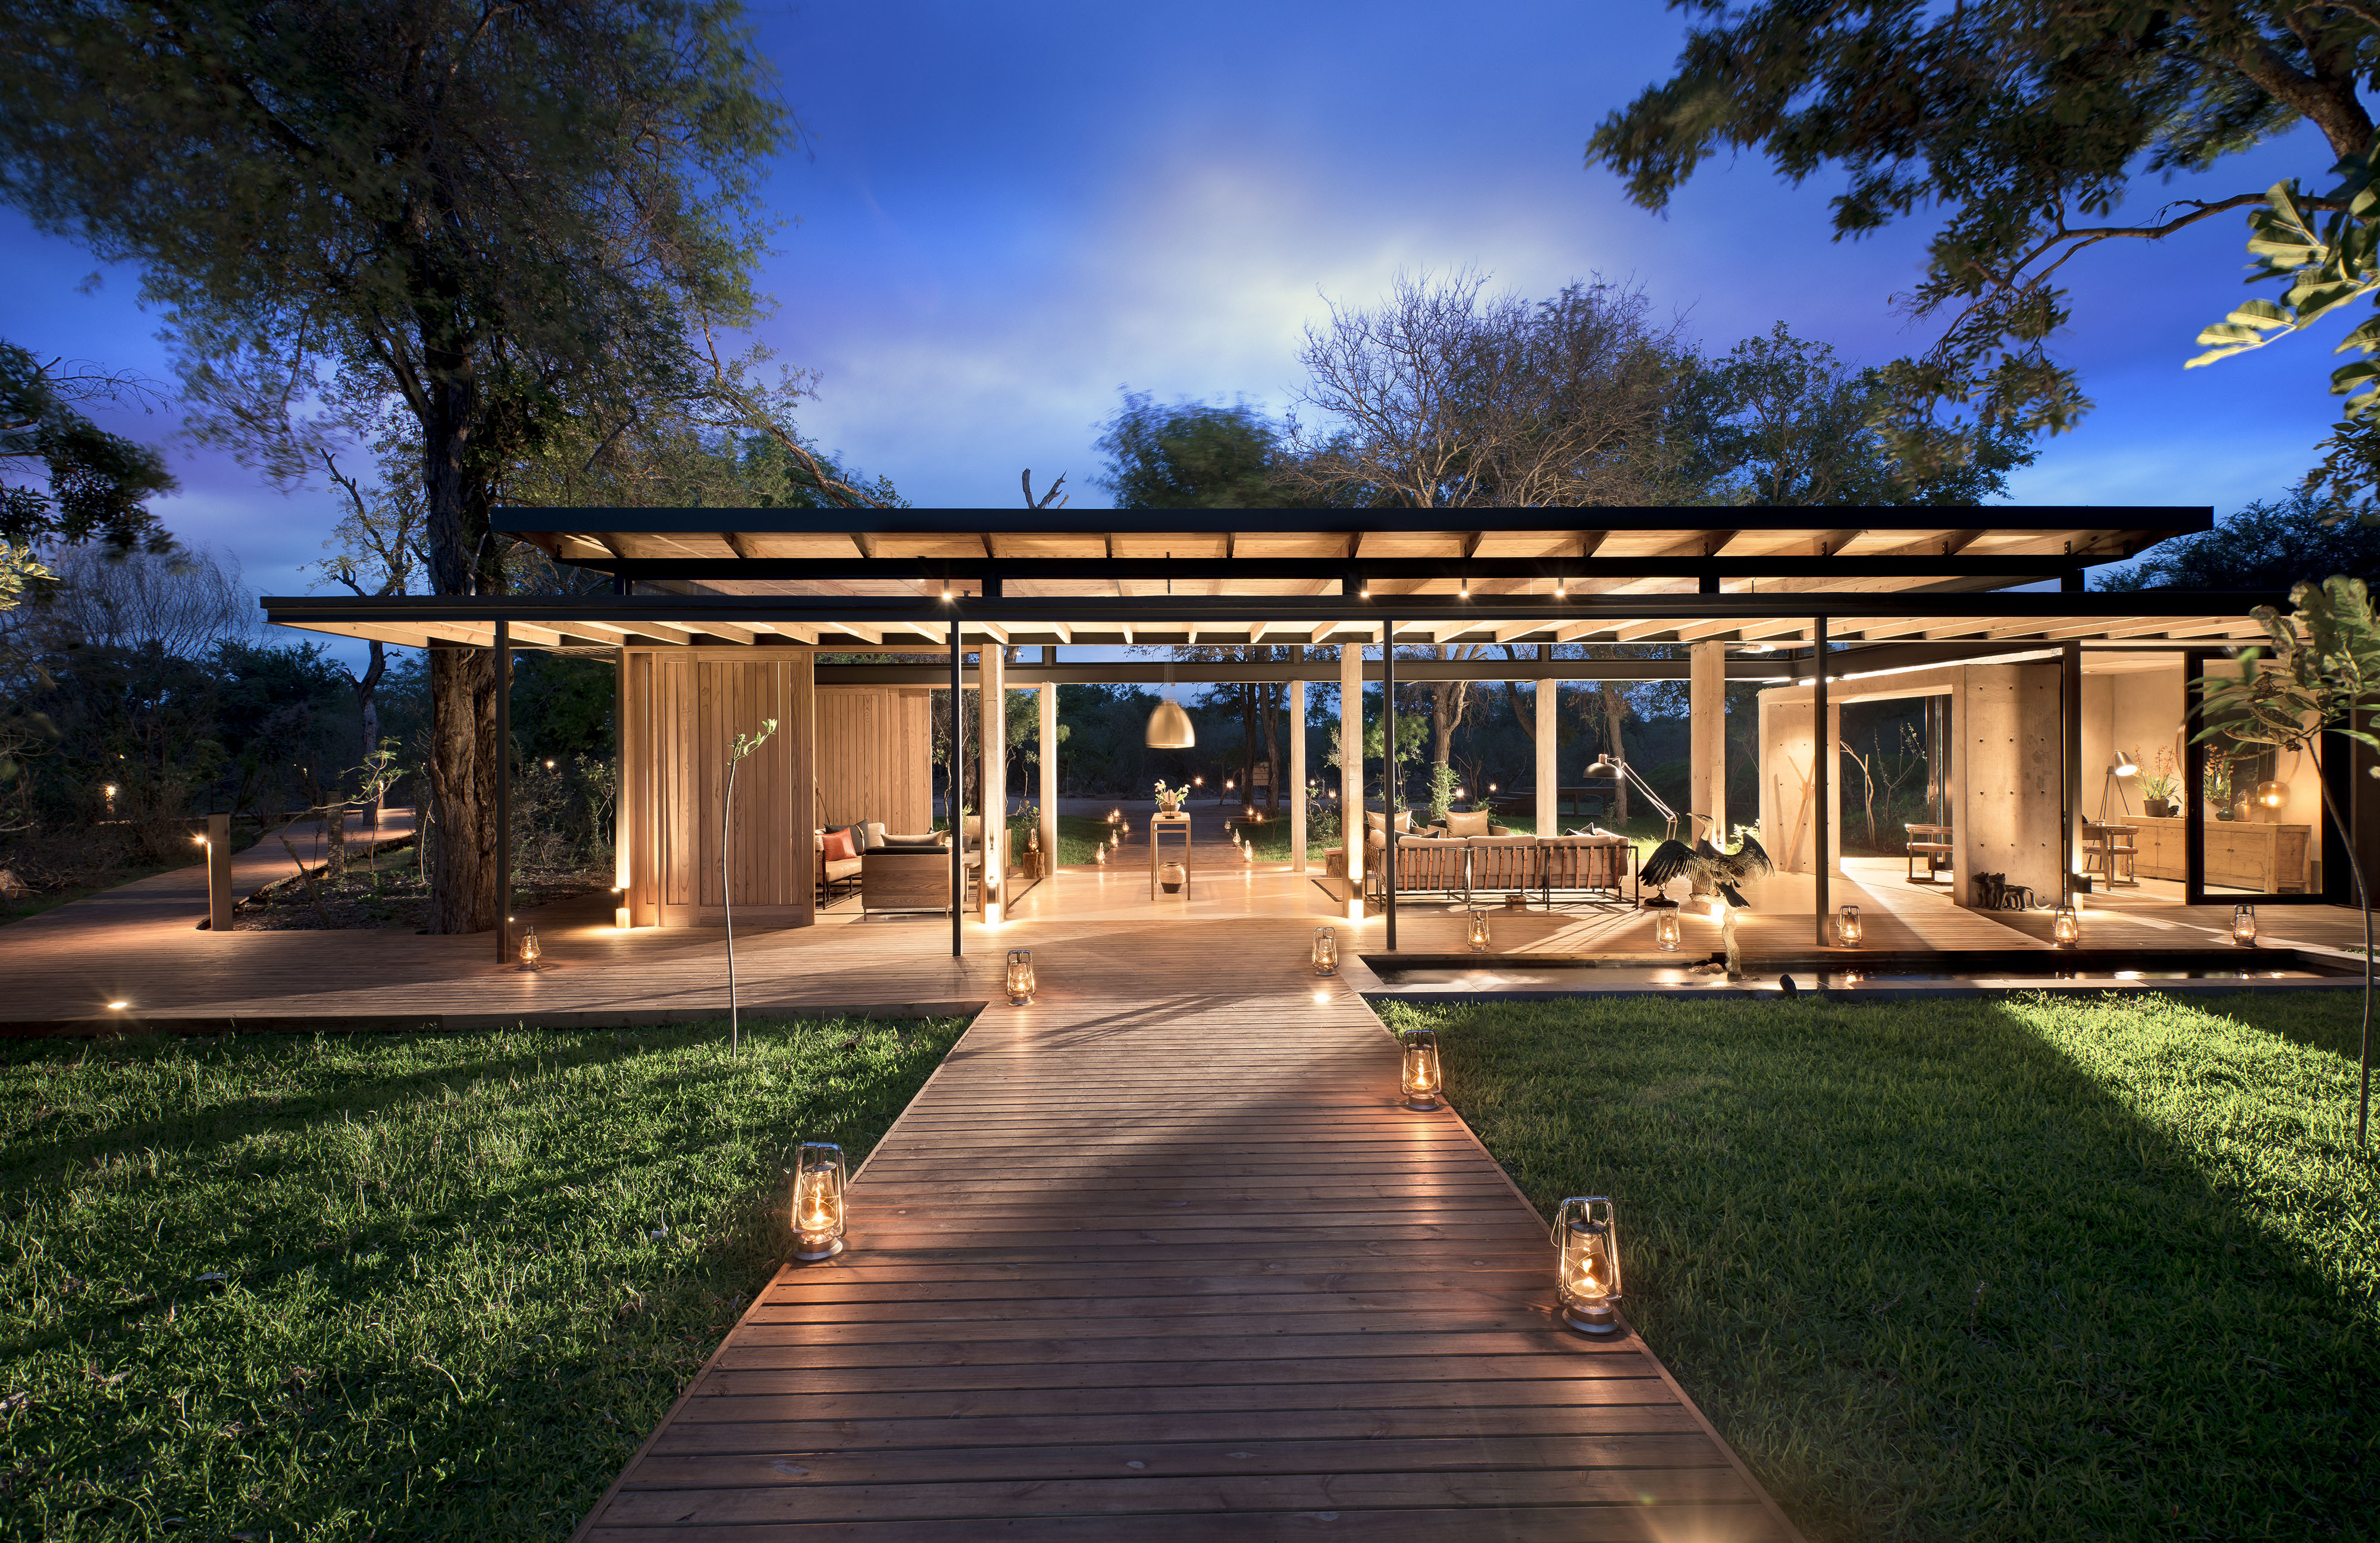 ivorylodgeentrancetoreception 060238 Luxury hideaways for exclusive MICE experiences in South Africa